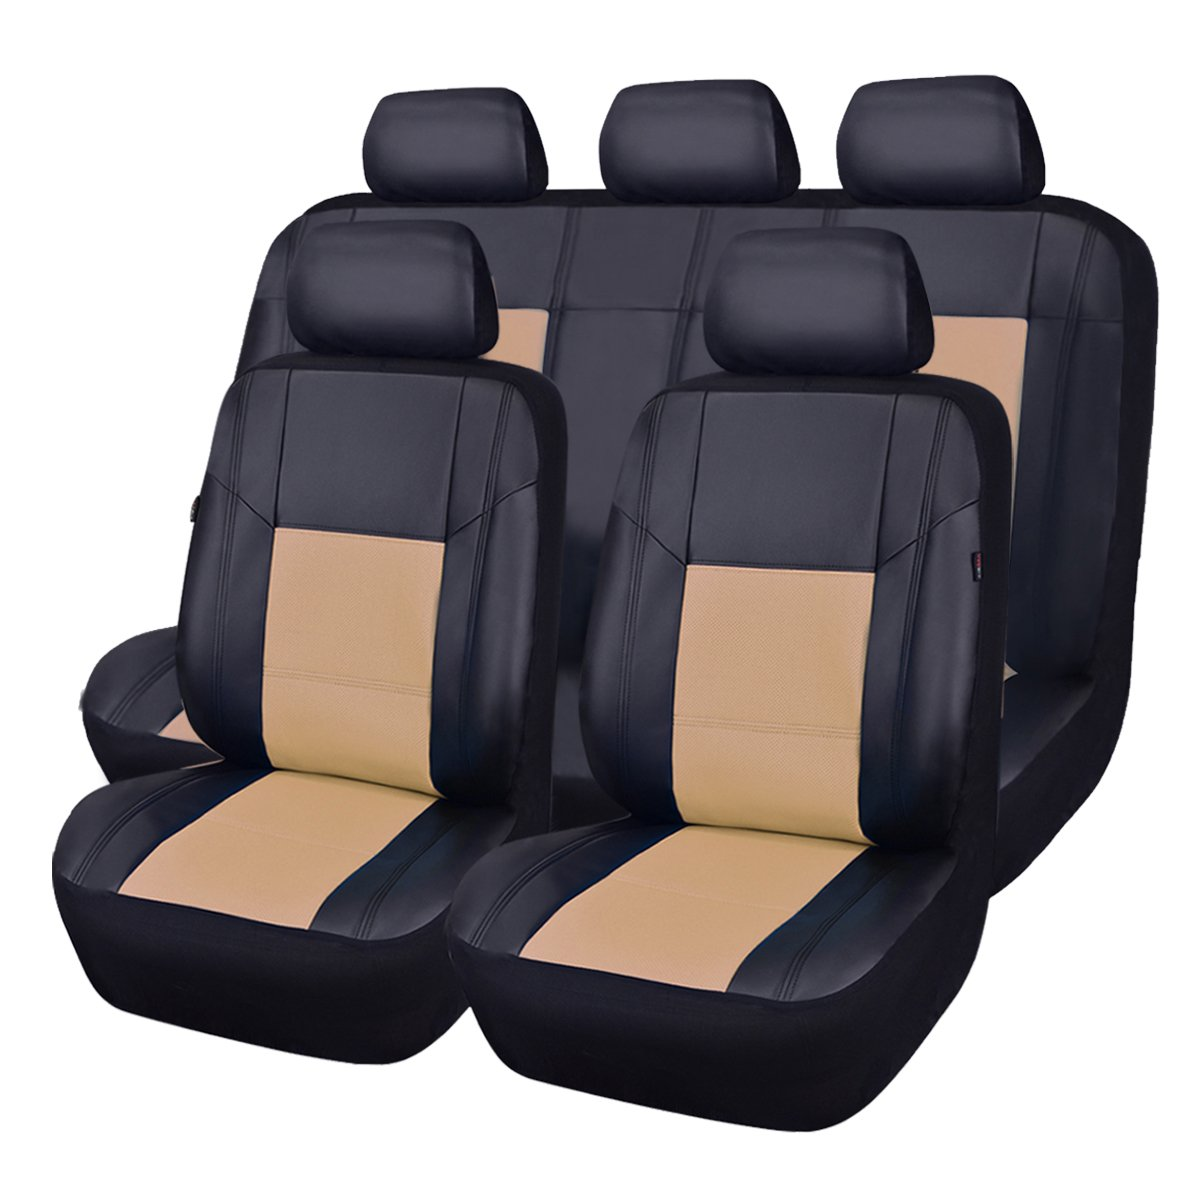 NEW ARRIVAL- CAR PASS Skyline PU LEATHER CAR SEAT COVERS - UNIVERSAL FIT FOR CARS,SUV,VEHICLES (11PCS, ELEGANT BLACK) ZT-0012